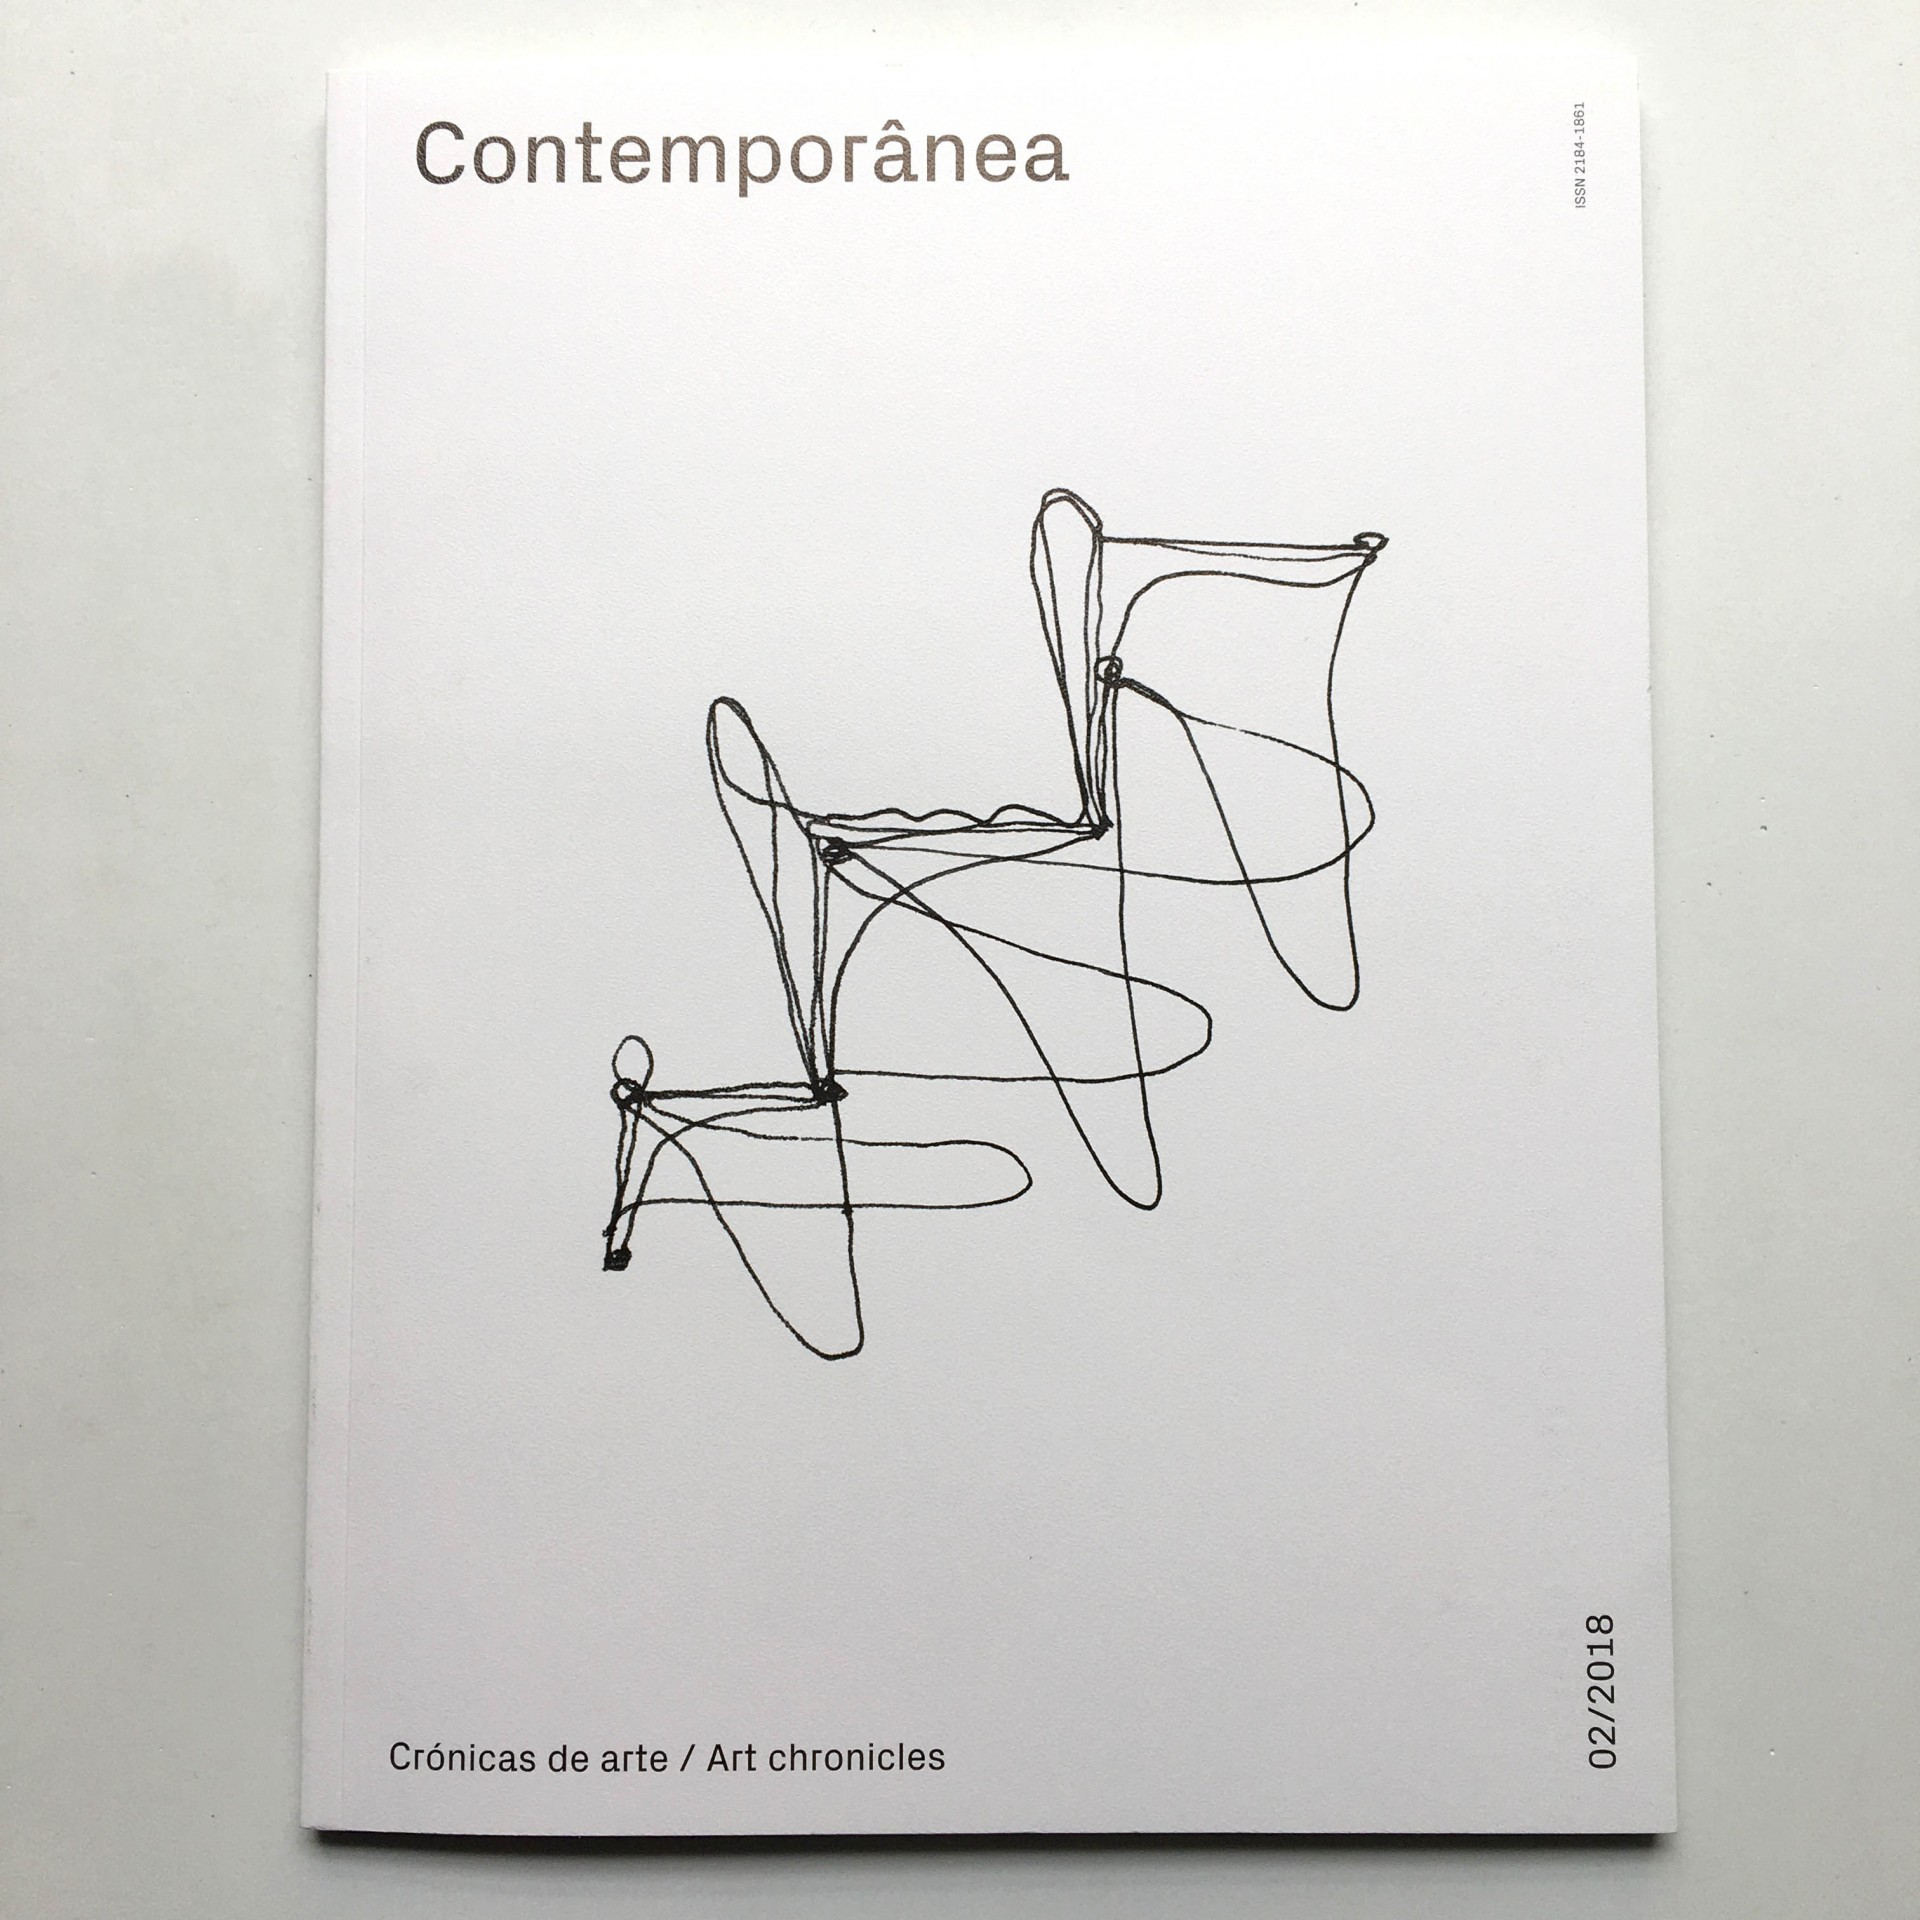 Contemporânea I